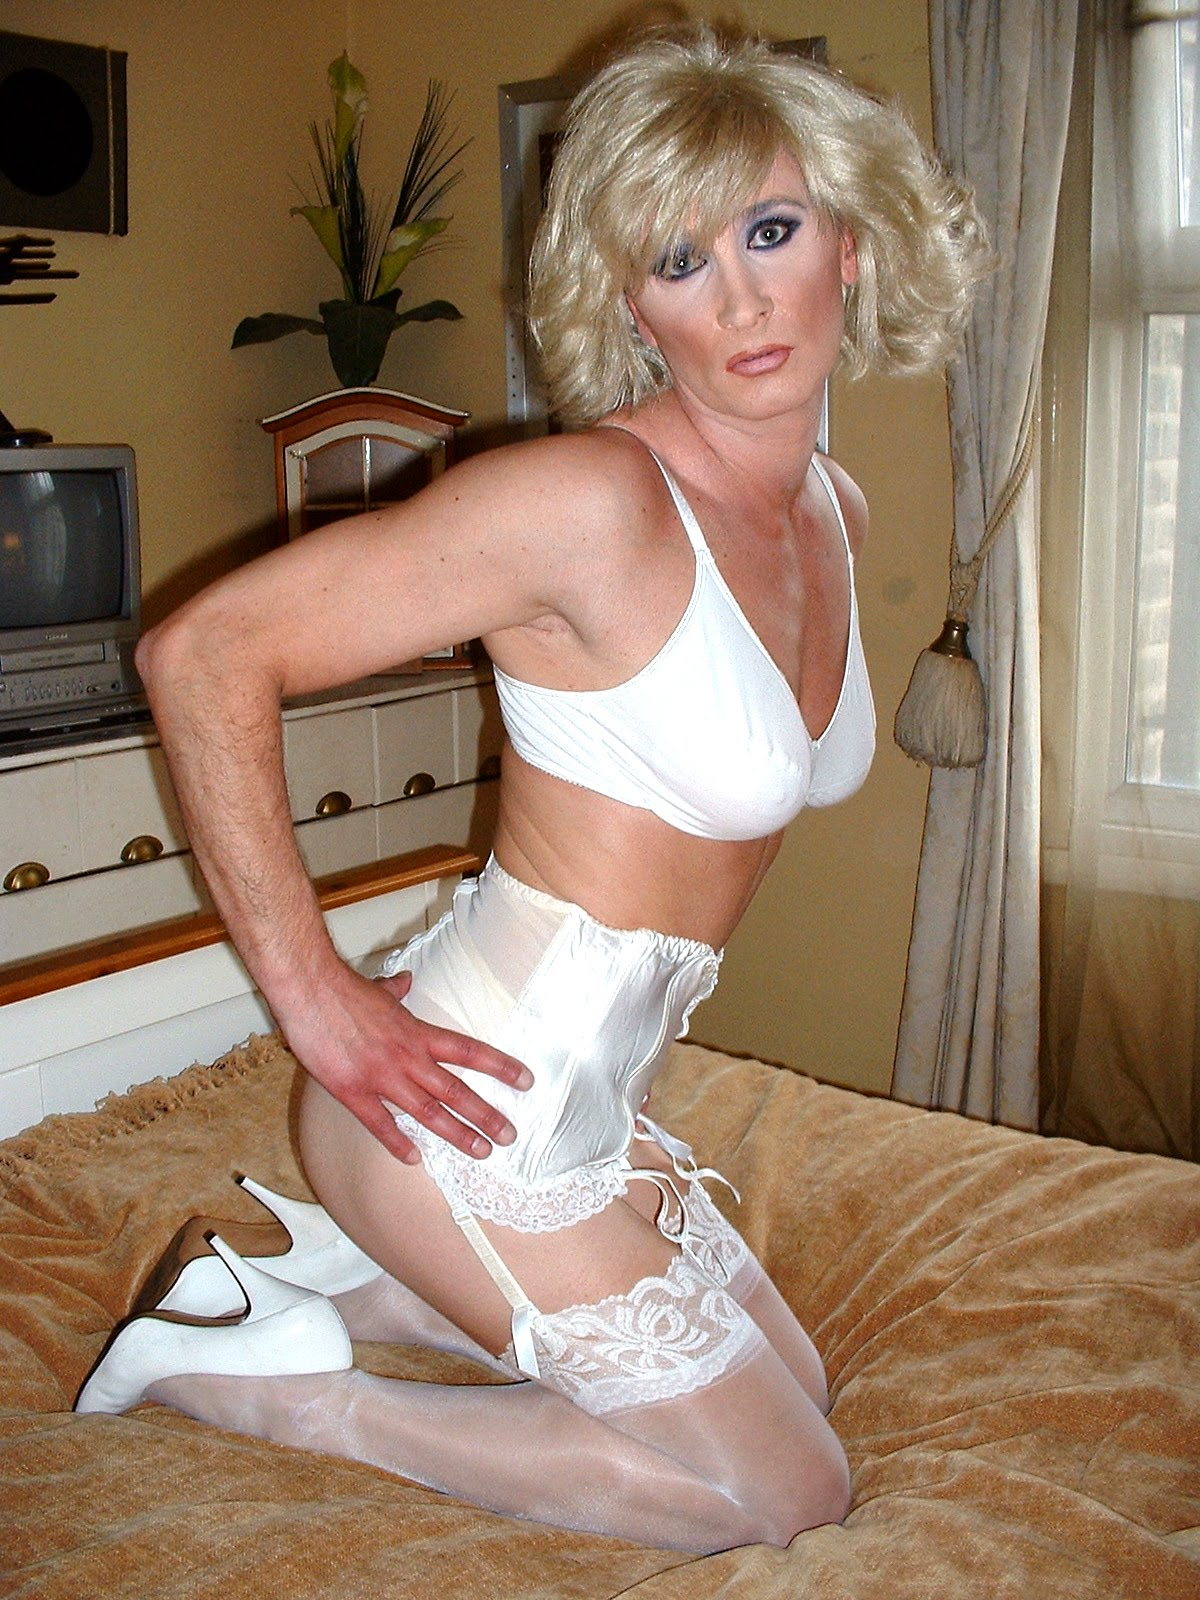 Captions crossdresser girdle